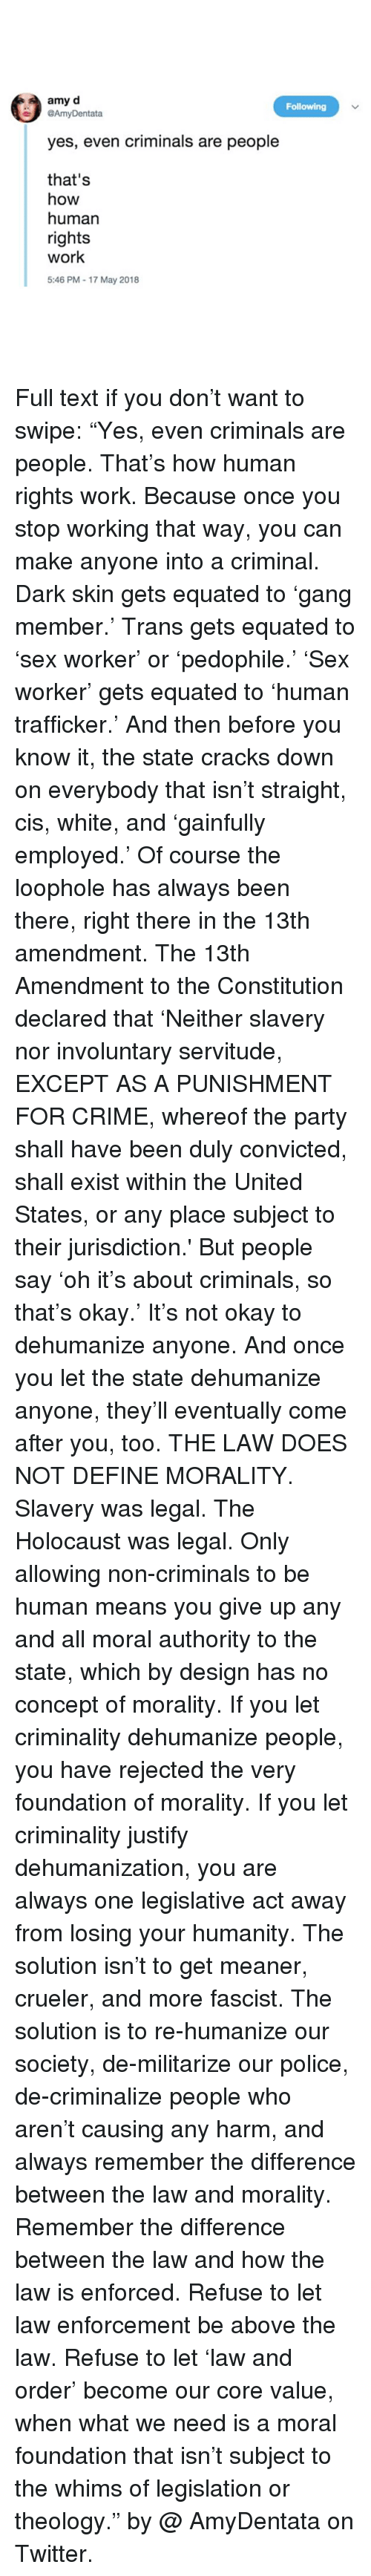 """Crime, Memes, and Party: amy d  @AmyDentata  Following  yes, even criminals are people  that's  how  human  rights  work  5:46 PM - 17 May 2018 Full text if you don't want to swipe: """"Yes, even criminals are people. That's how human rights work. Because once you stop working that way, you can make anyone into a criminal. Dark skin gets equated to 'gang member.' Trans gets equated to 'sex worker' or 'pedophile.' 'Sex worker' gets equated to 'human trafficker.' And then before you know it, the state cracks down on everybody that isn't straight, cis, white, and 'gainfully employed.' Of course the loophole has always been there, right there in the 13th amendment. The 13th Amendment to the Constitution declared that 'Neither slavery nor involuntary servitude, EXCEPT AS A PUNISHMENT FOR CRIME, whereof the party shall have been duly convicted, shall exist within the United States, or any place subject to their jurisdiction.' But people say 'oh it's about criminals, so that's okay.' It's not okay to dehumanize anyone. And once you let the state dehumanize anyone, they'll eventually come after you, too. THE LAW DOES NOT DEFINE MORALITY. Slavery was legal. The Holocaust was legal. Only allowing non-criminals to be human means you give up any and all moral authority to the state, which by design has no concept of morality. If you let criminality dehumanize people, you have rejected the very foundation of morality. If you let criminality justify dehumanization, you are always one legislative act away from losing your humanity. The solution isn't to get meaner, crueler, and more fascist. The solution is to re-humanize our society, de-militarize our police, de-criminalize people who aren't causing any harm, and always remember the difference between the law and morality. Remember the difference between the law and how the law is enforced. Refuse to let law enforcement be above the law. Refuse to let 'law and order' become our core value, when what we need is a moral foundation tha"""